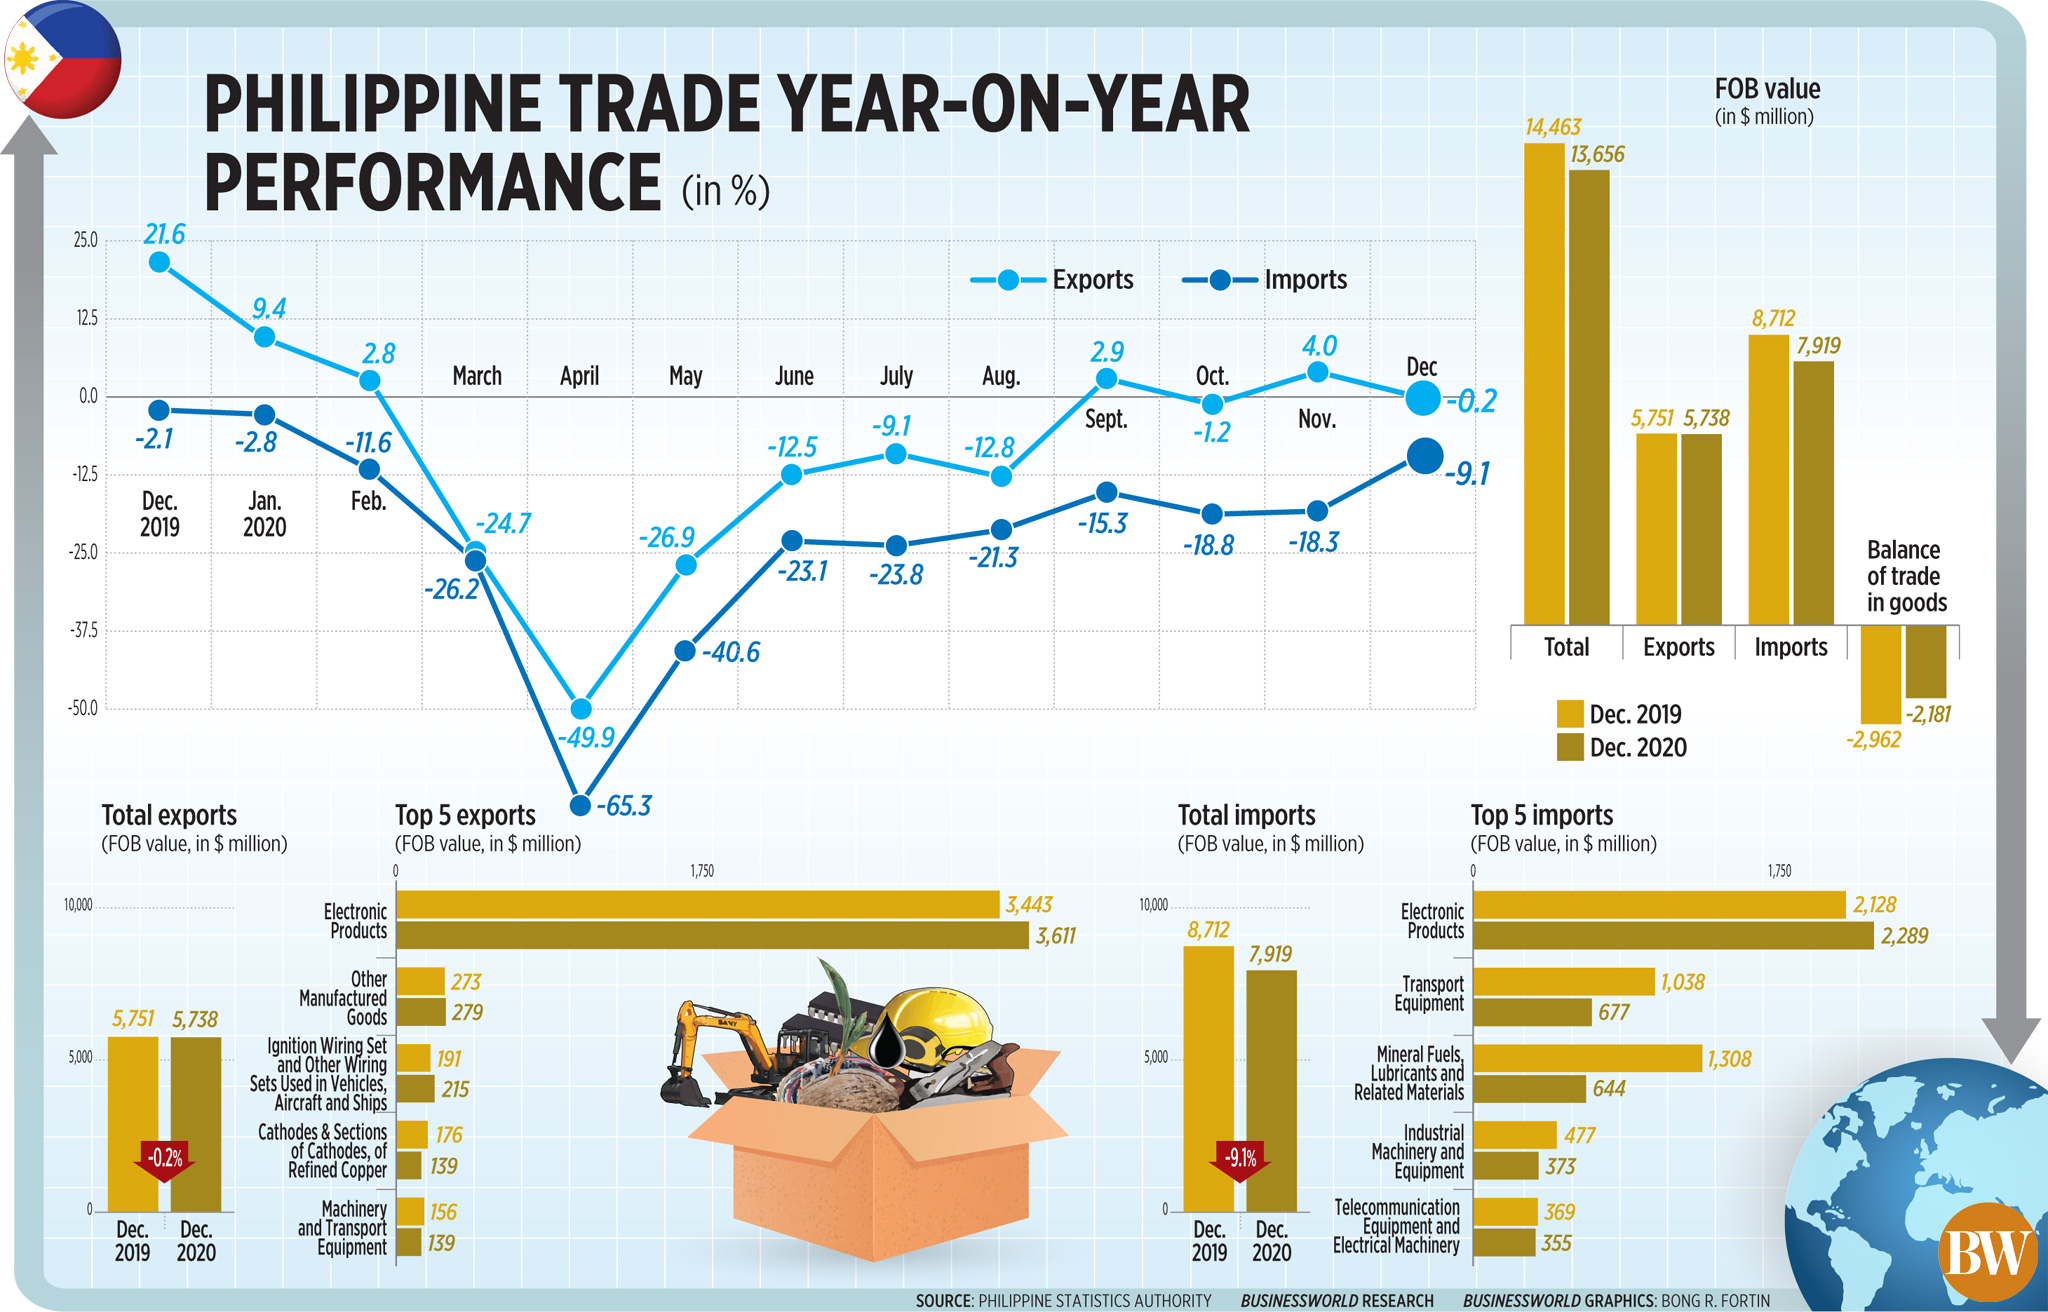 Philippine trade year-on-year performance (Dec. 2020)